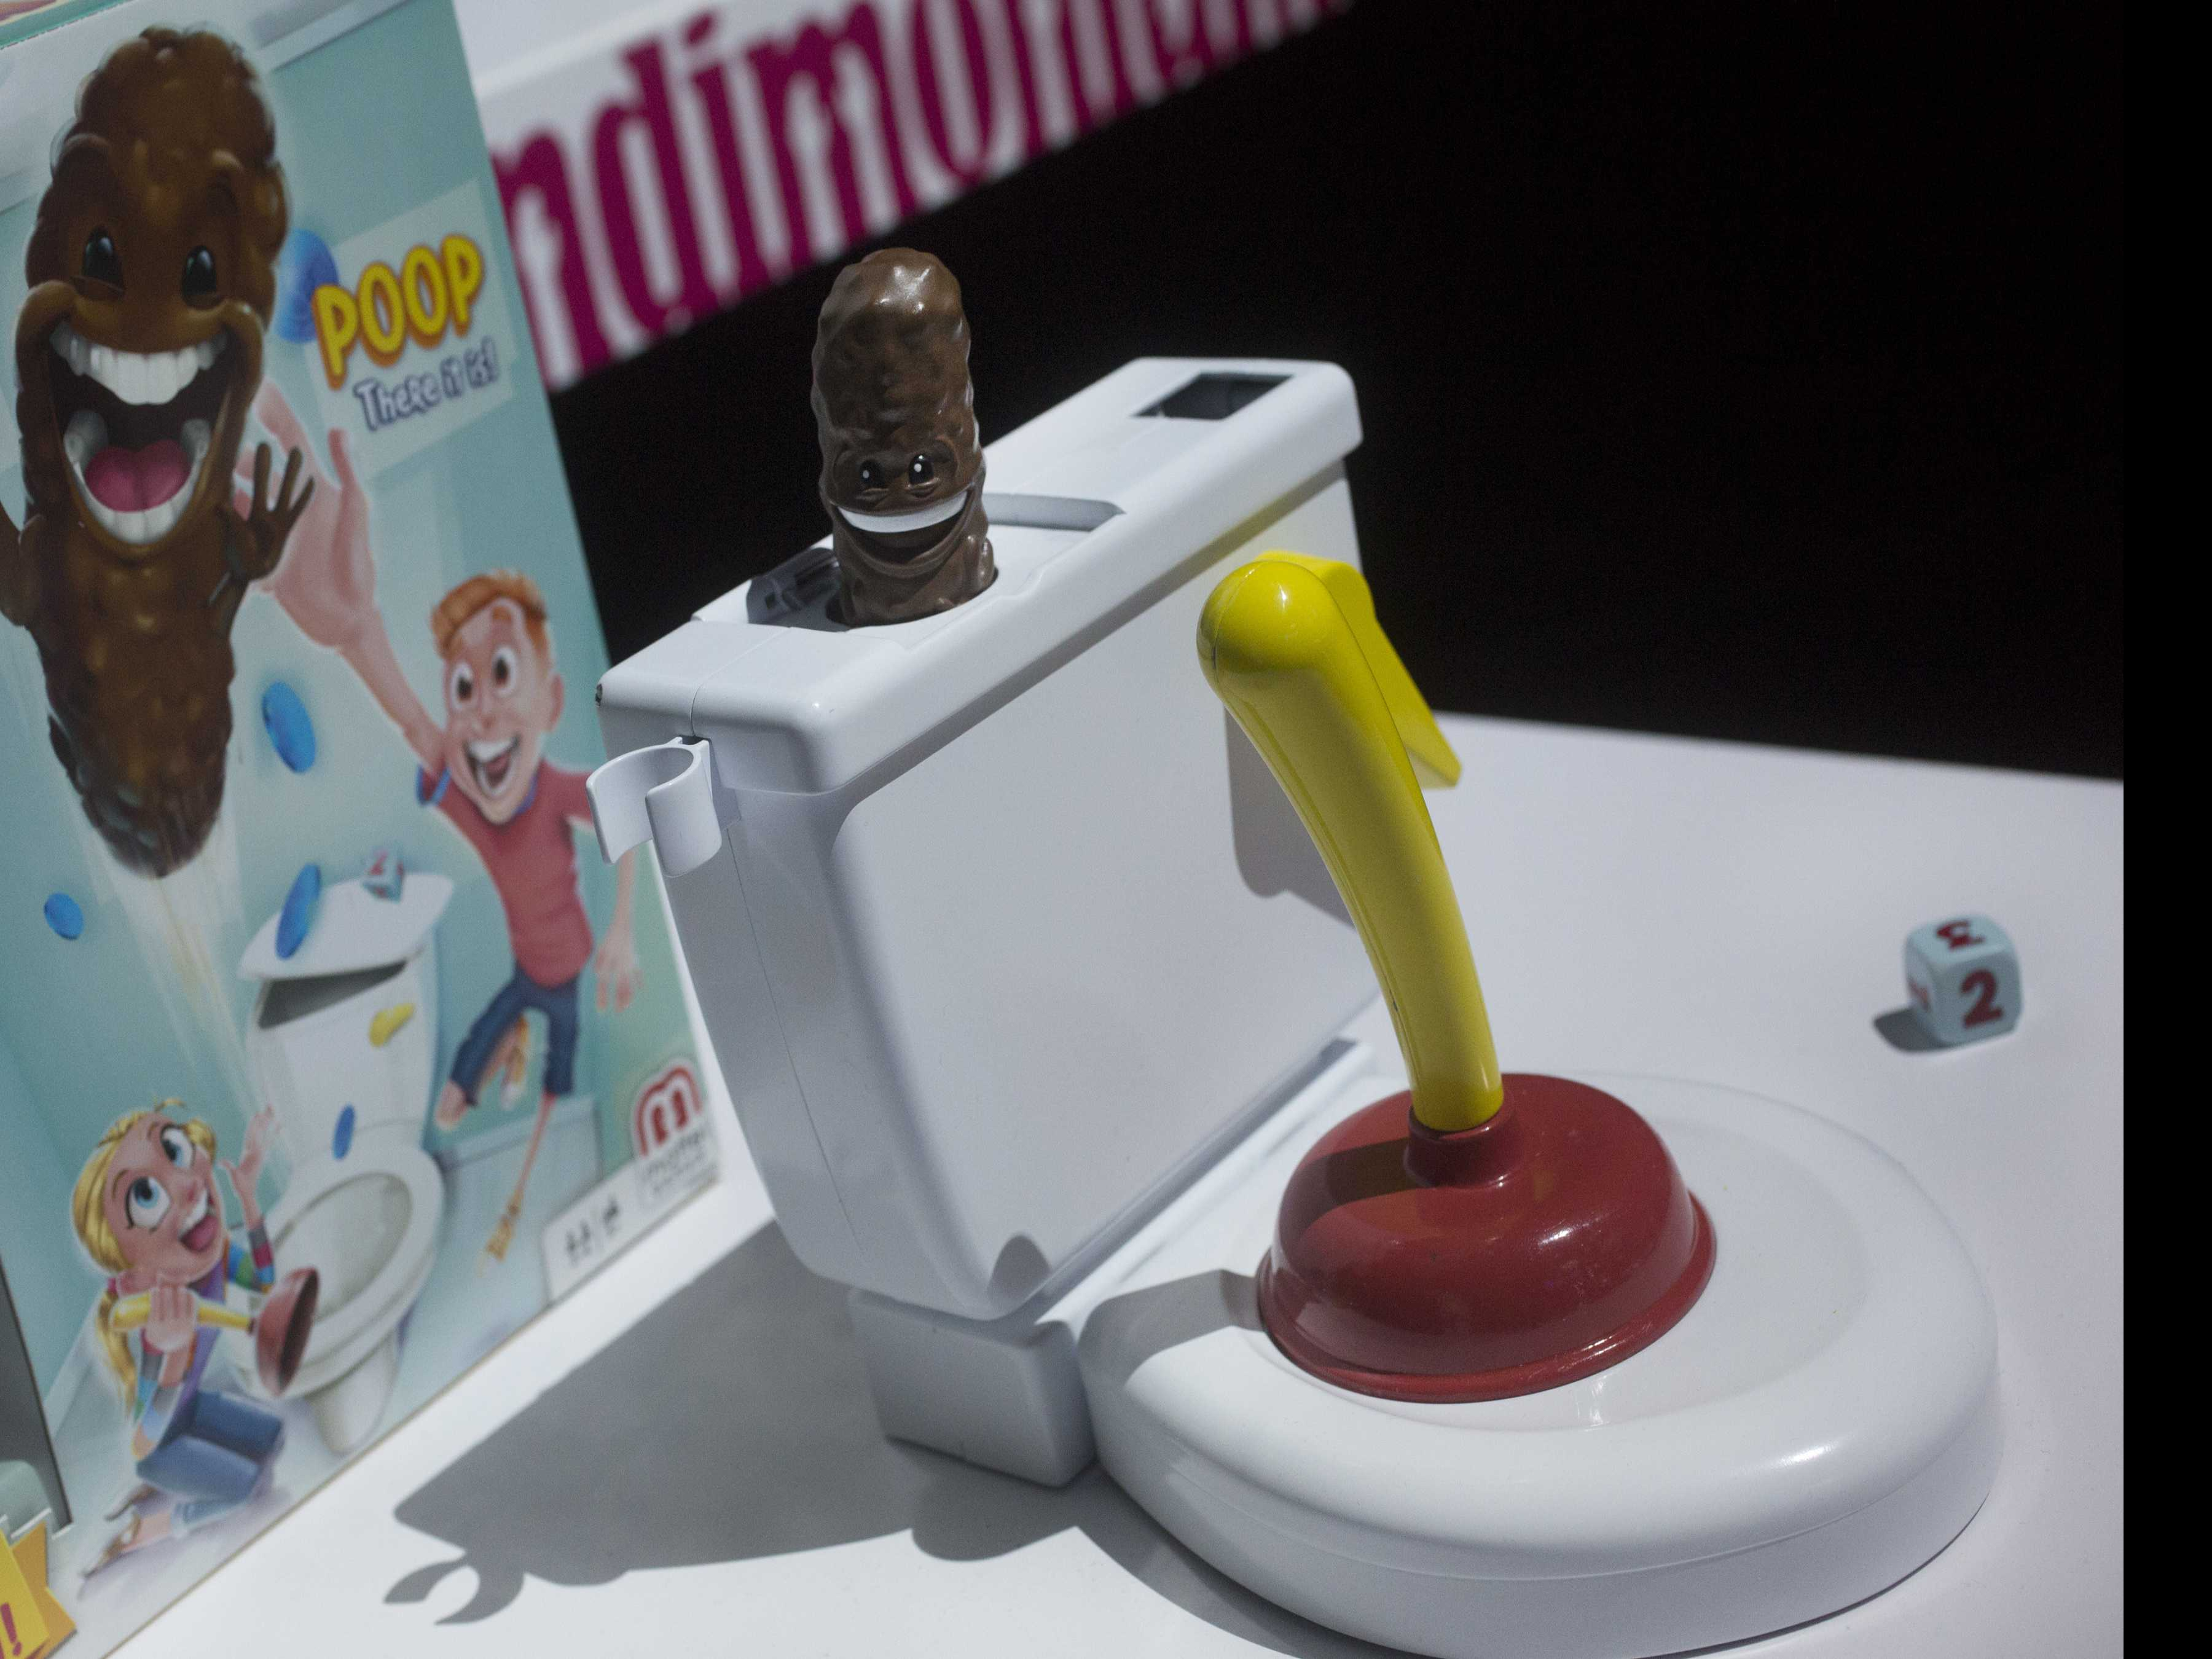 Toy Makers Turn to the Toilet for Poop-Inspired Toys